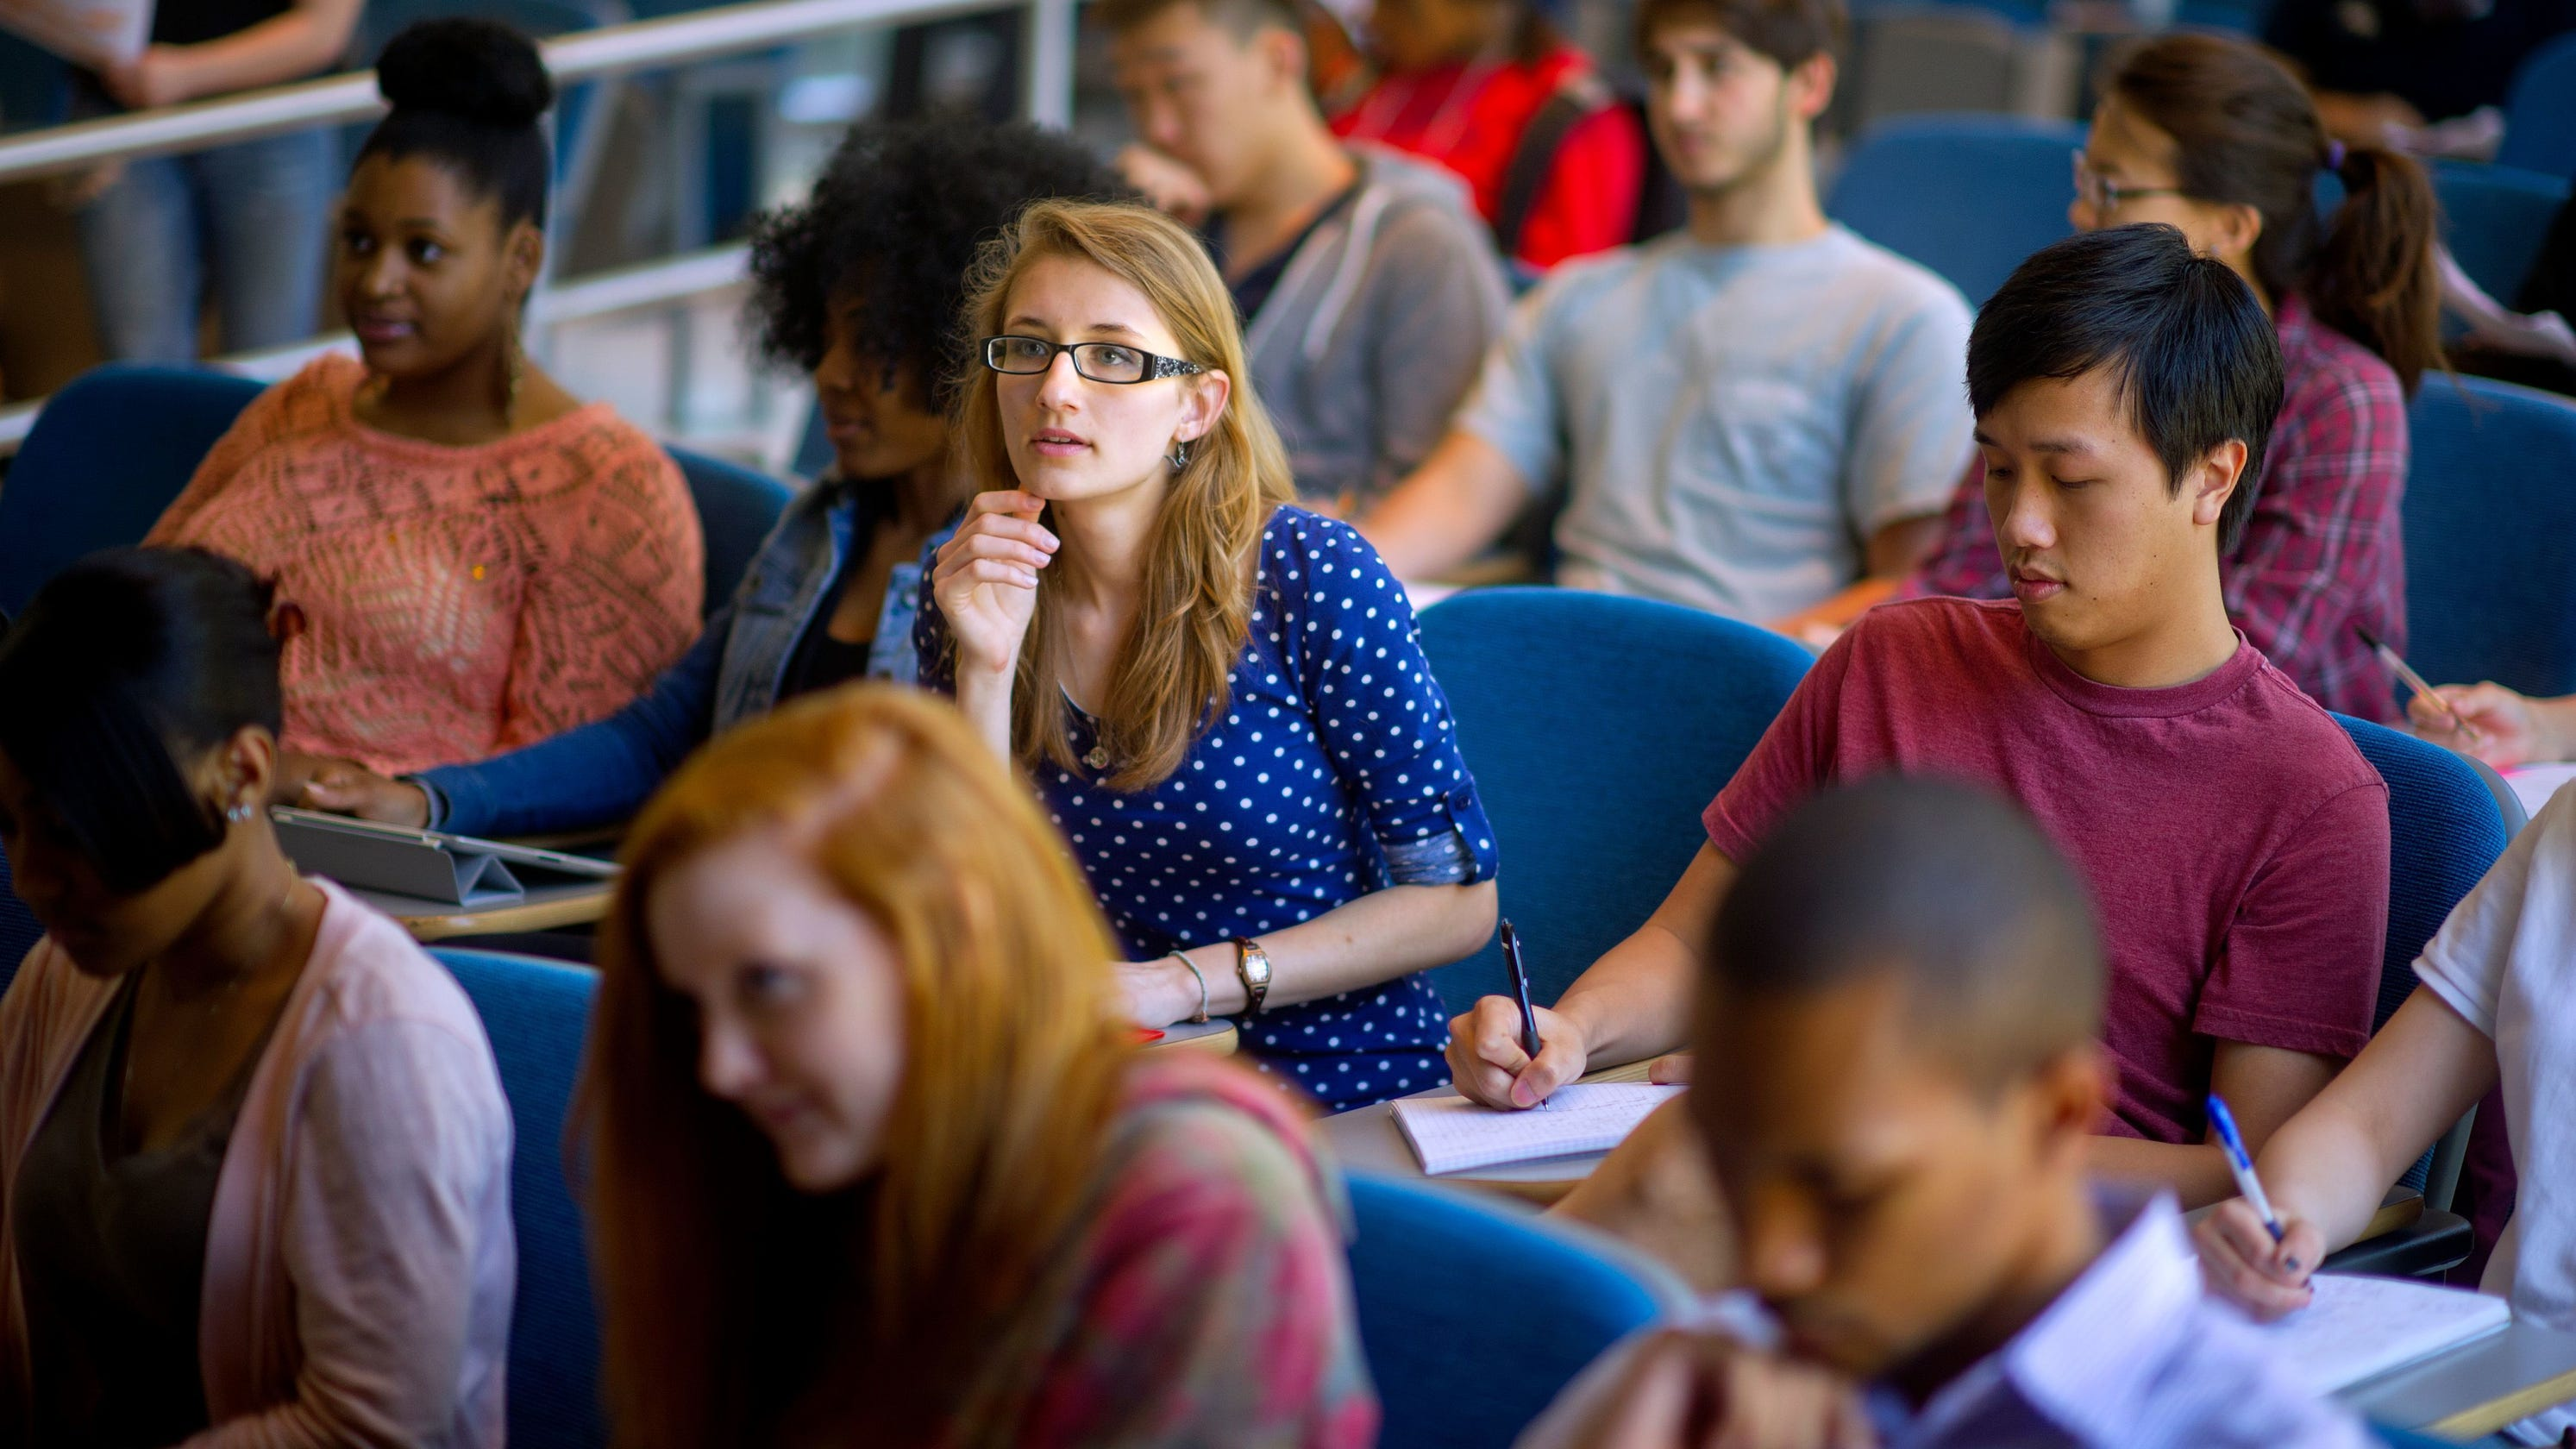 As a college counselor, I see students on their worst days — days that are now more common